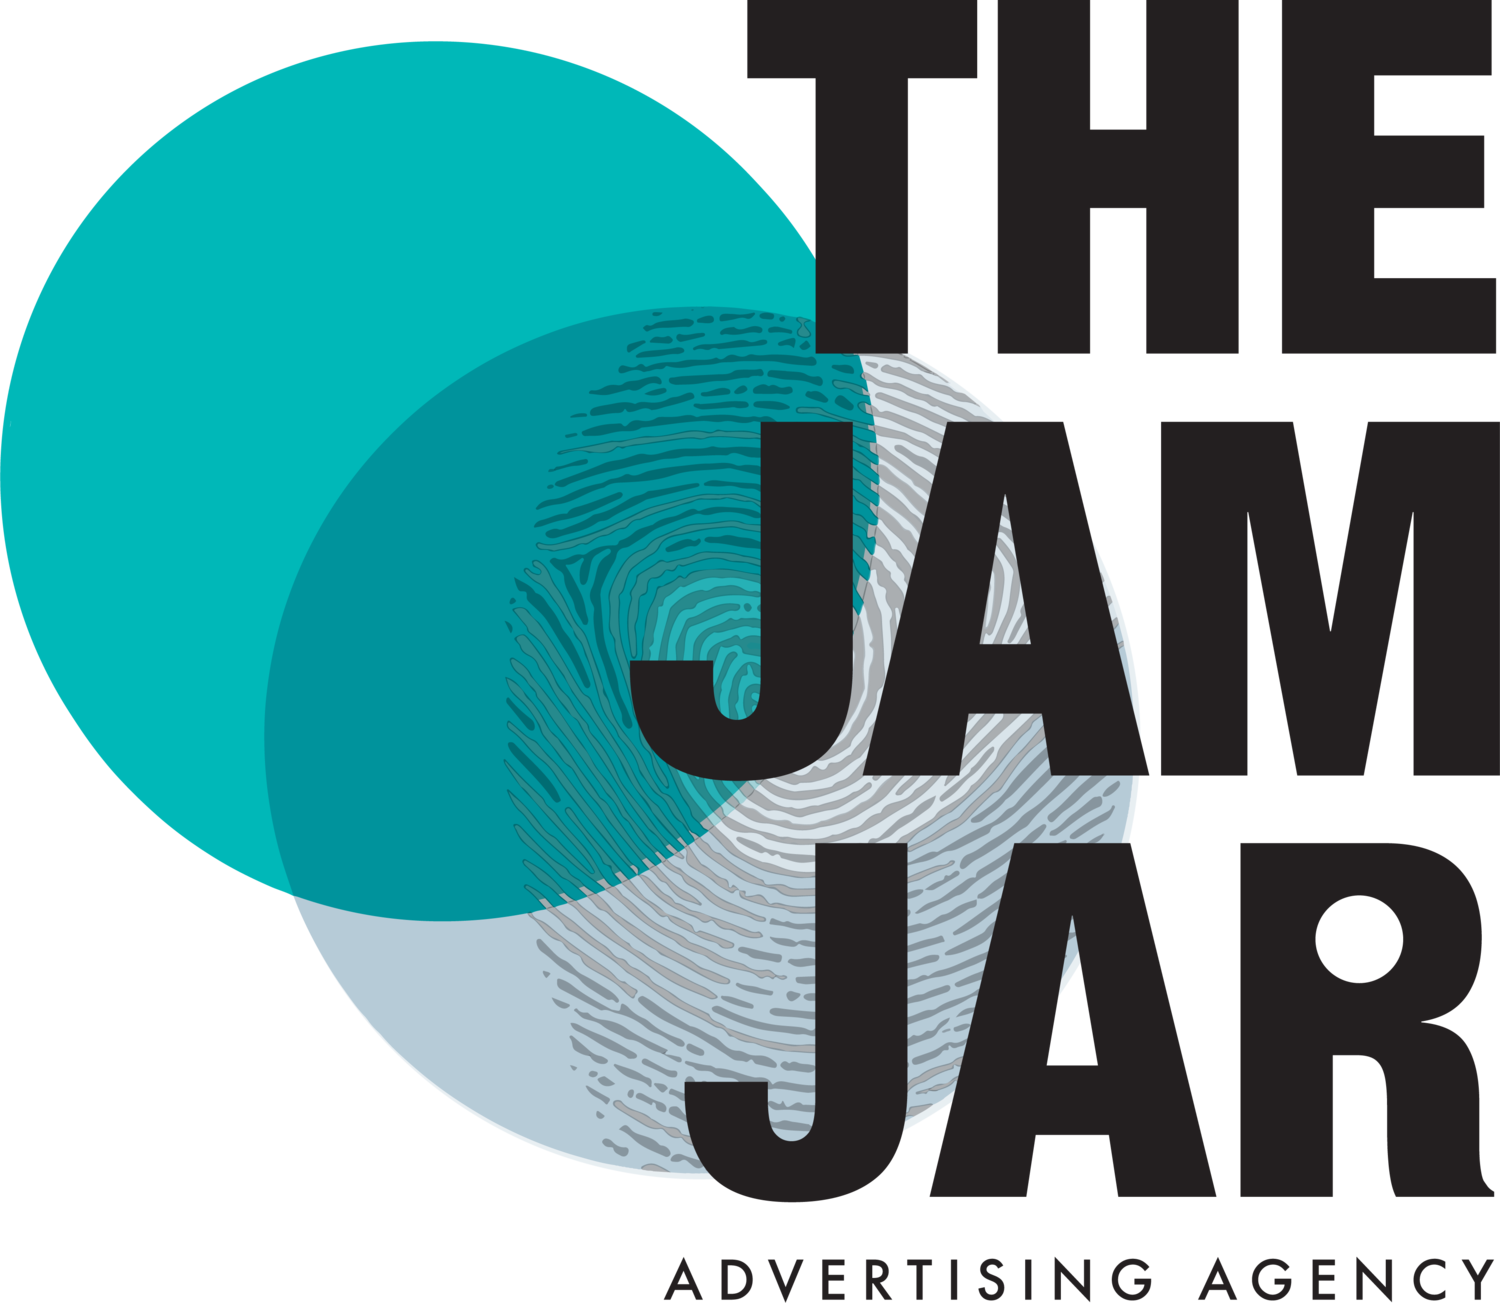 The new Jam Jar site